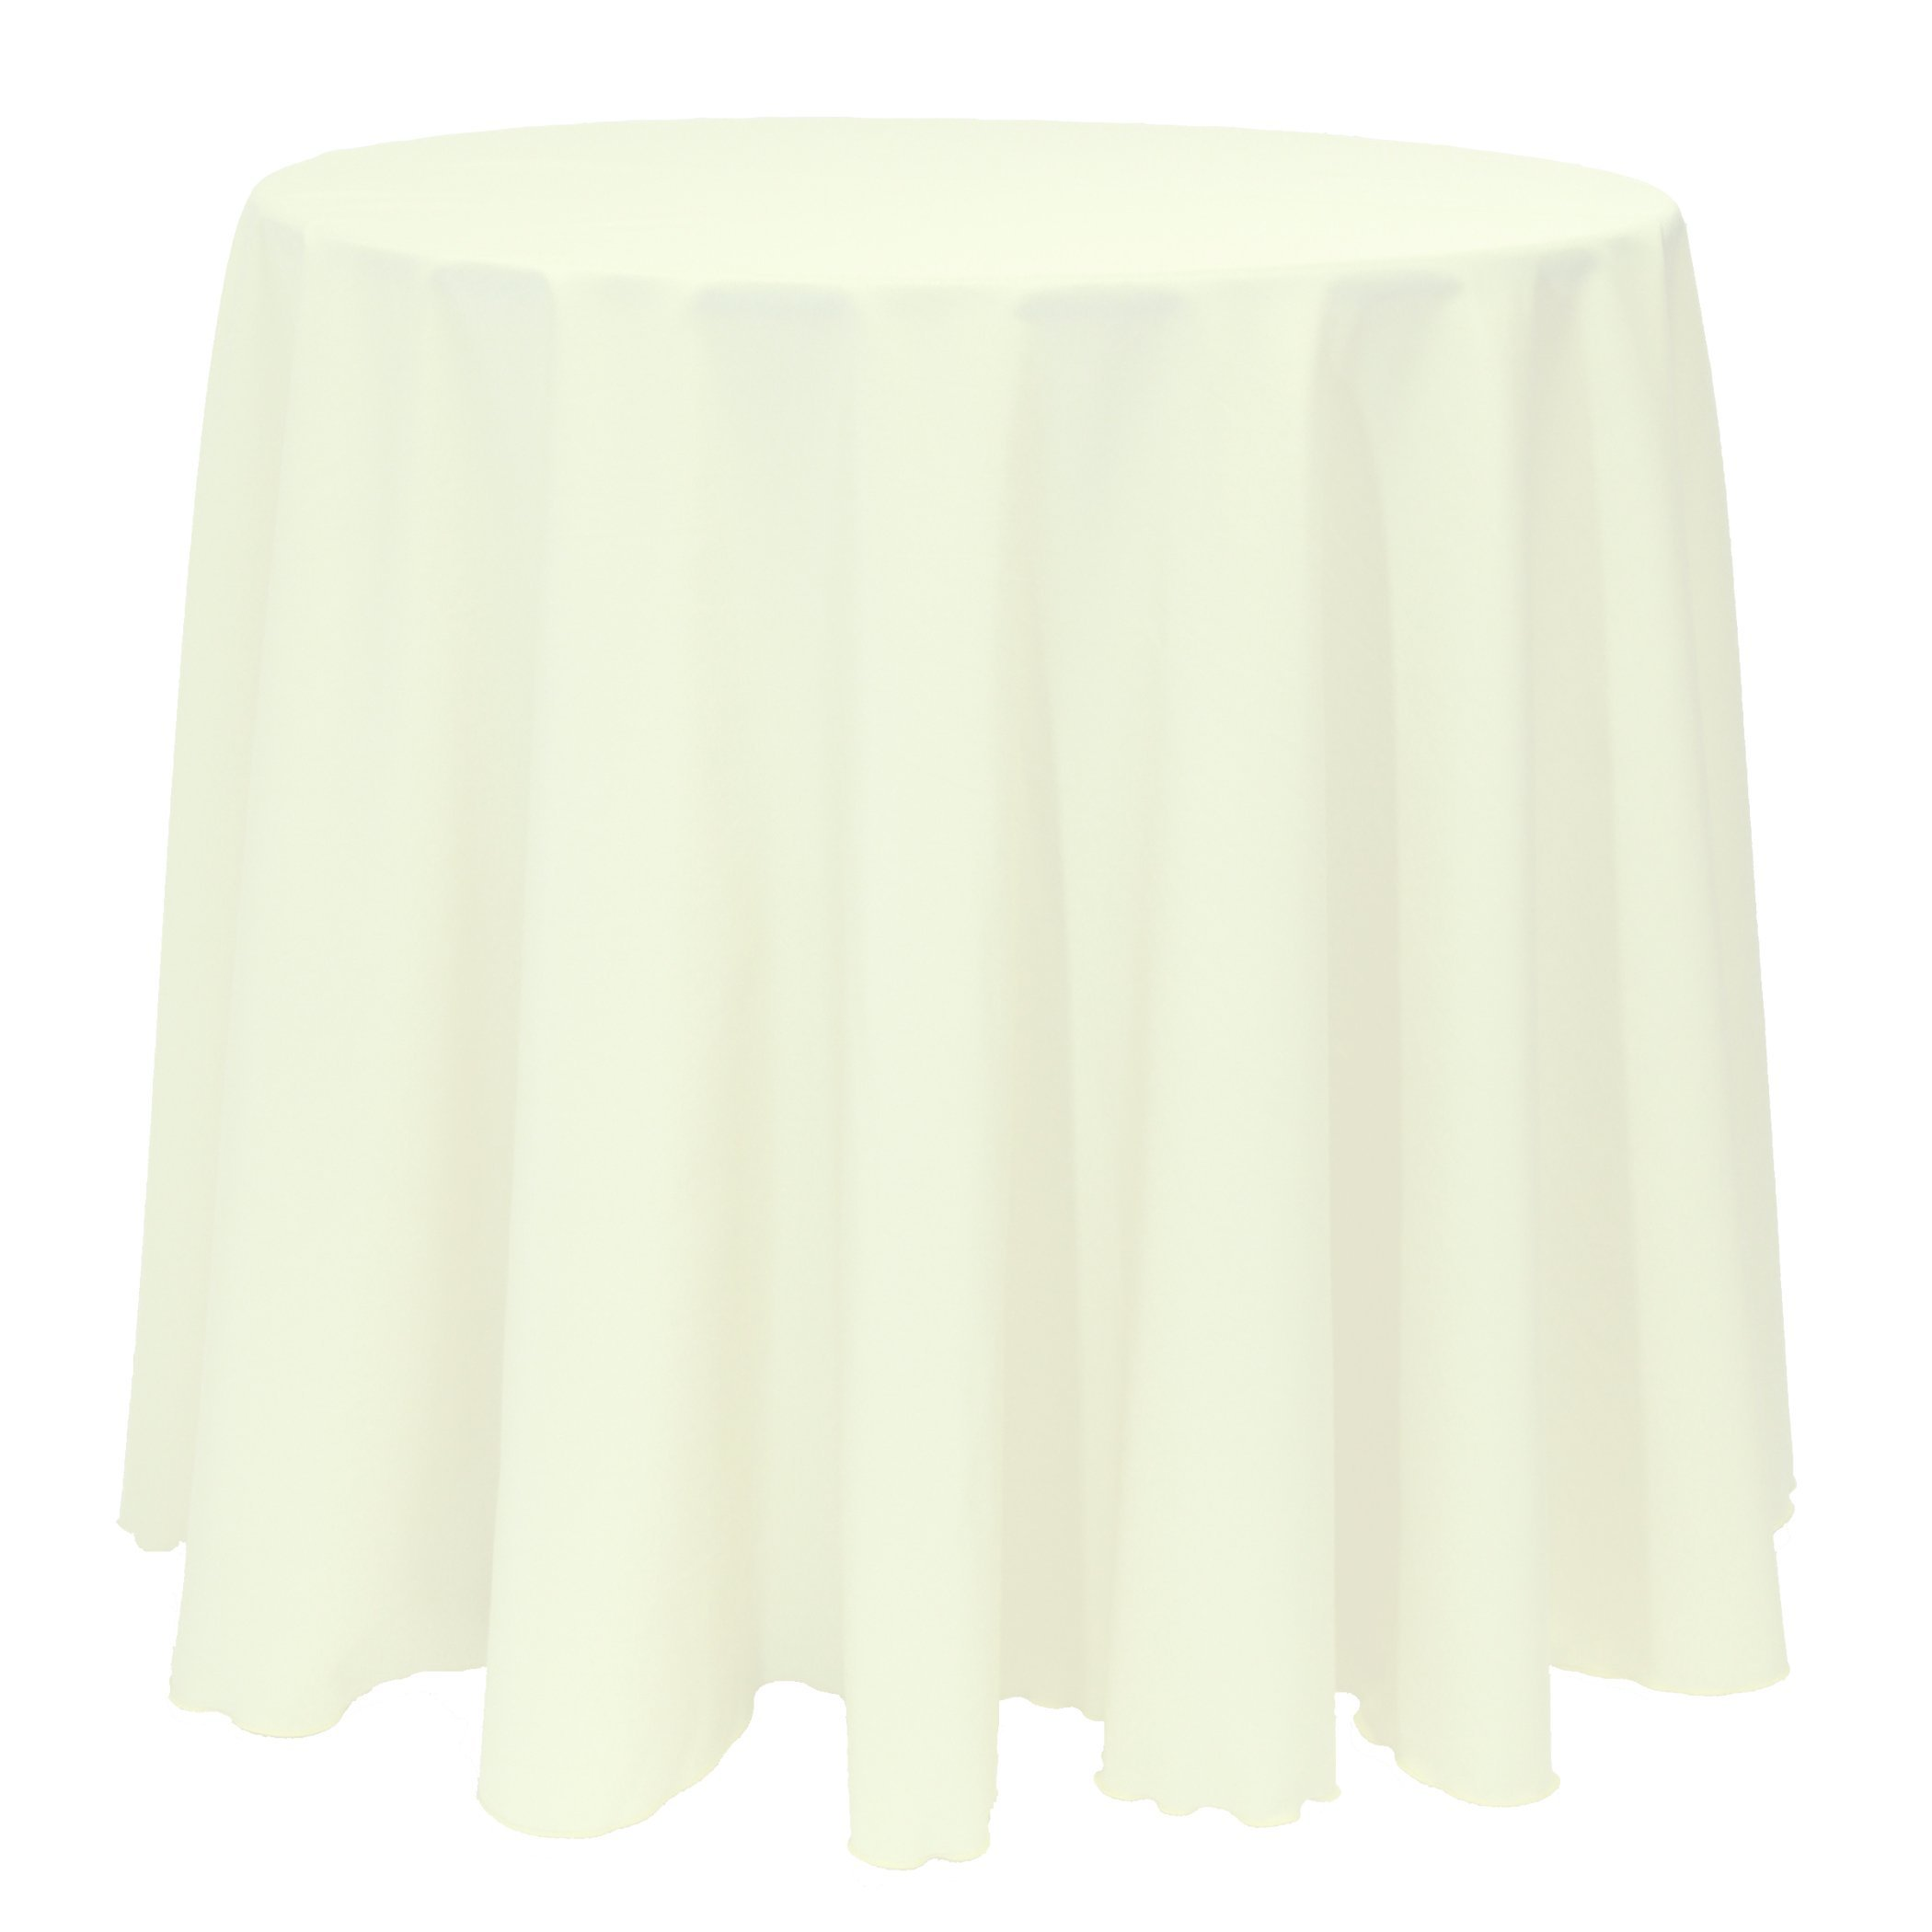 Ultimate Textile (10 Pack) 90-Inch Round Polyester Linen Tablecloth - for Wedding, Restaurant or Banquet use, Ivory Cream by Ultimate Textile